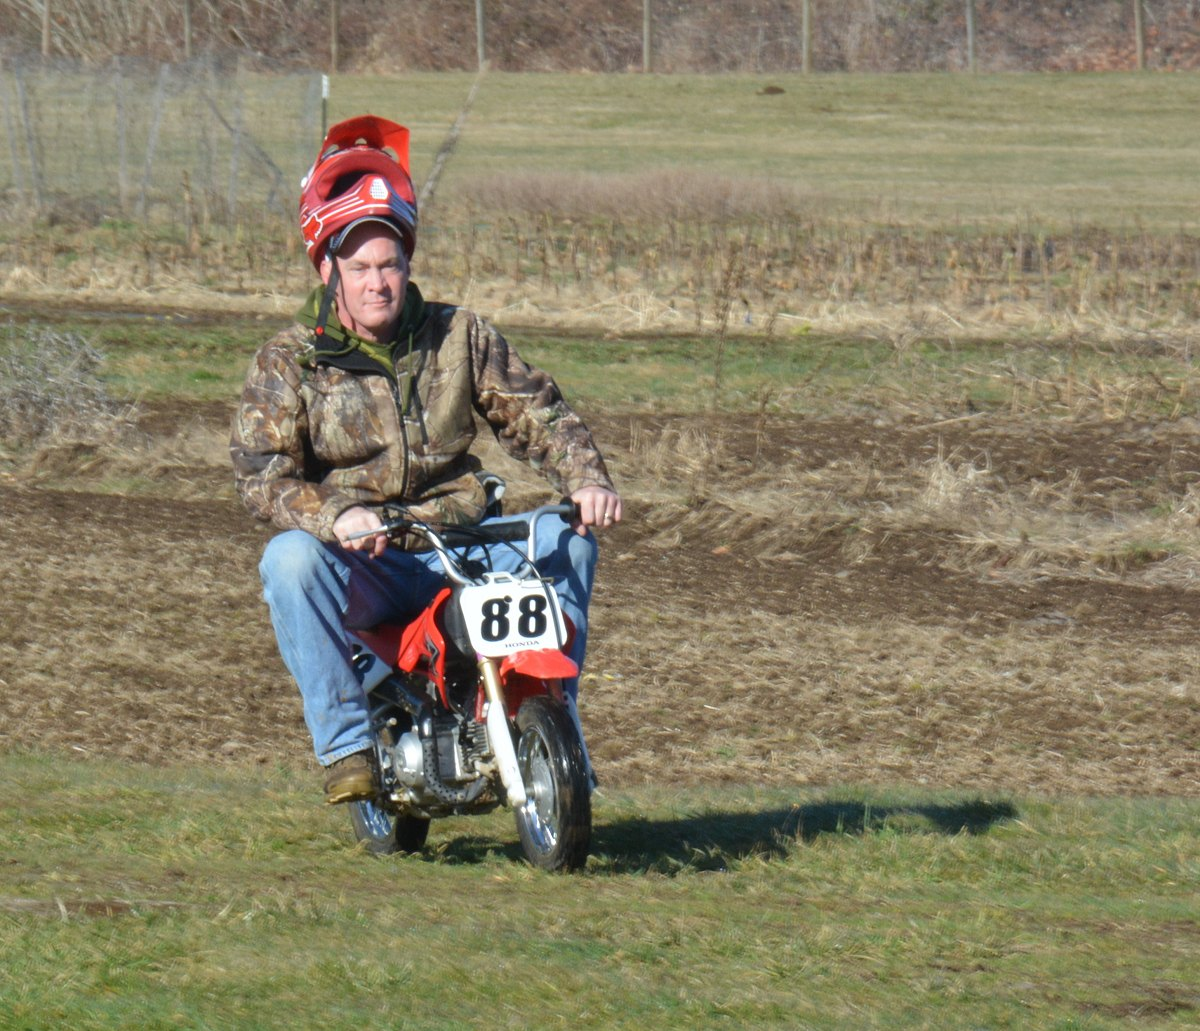 Need a bigger helmet - from the Dirt Biking with Miriam and Rodney photo gallery.